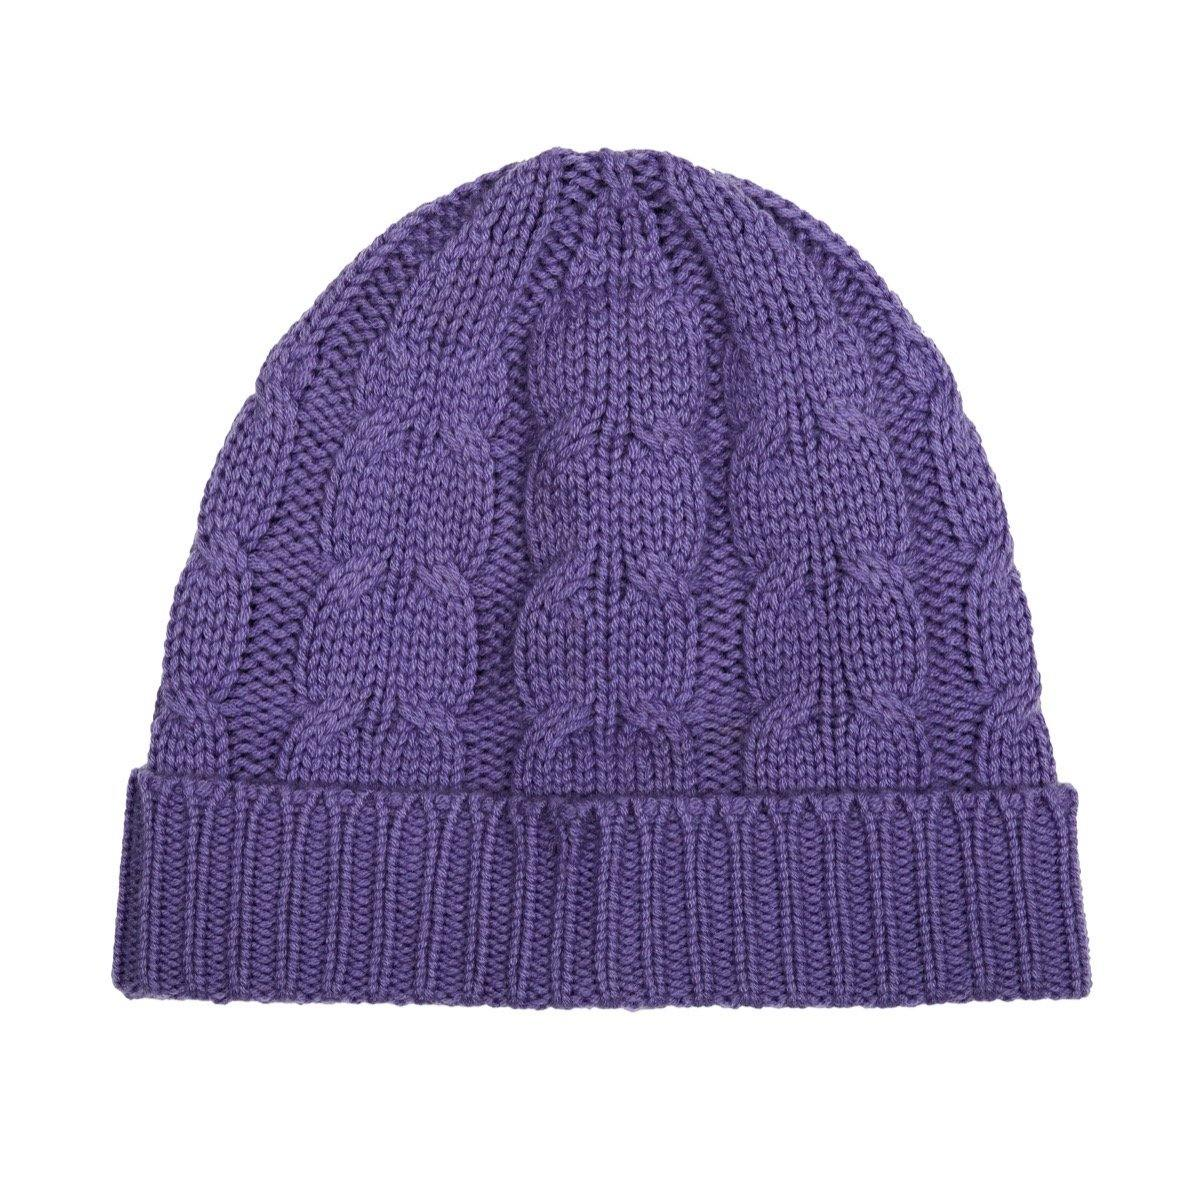 chunky cashmere wool blend women's beanie hat in lilac ethical sustainable brand piece